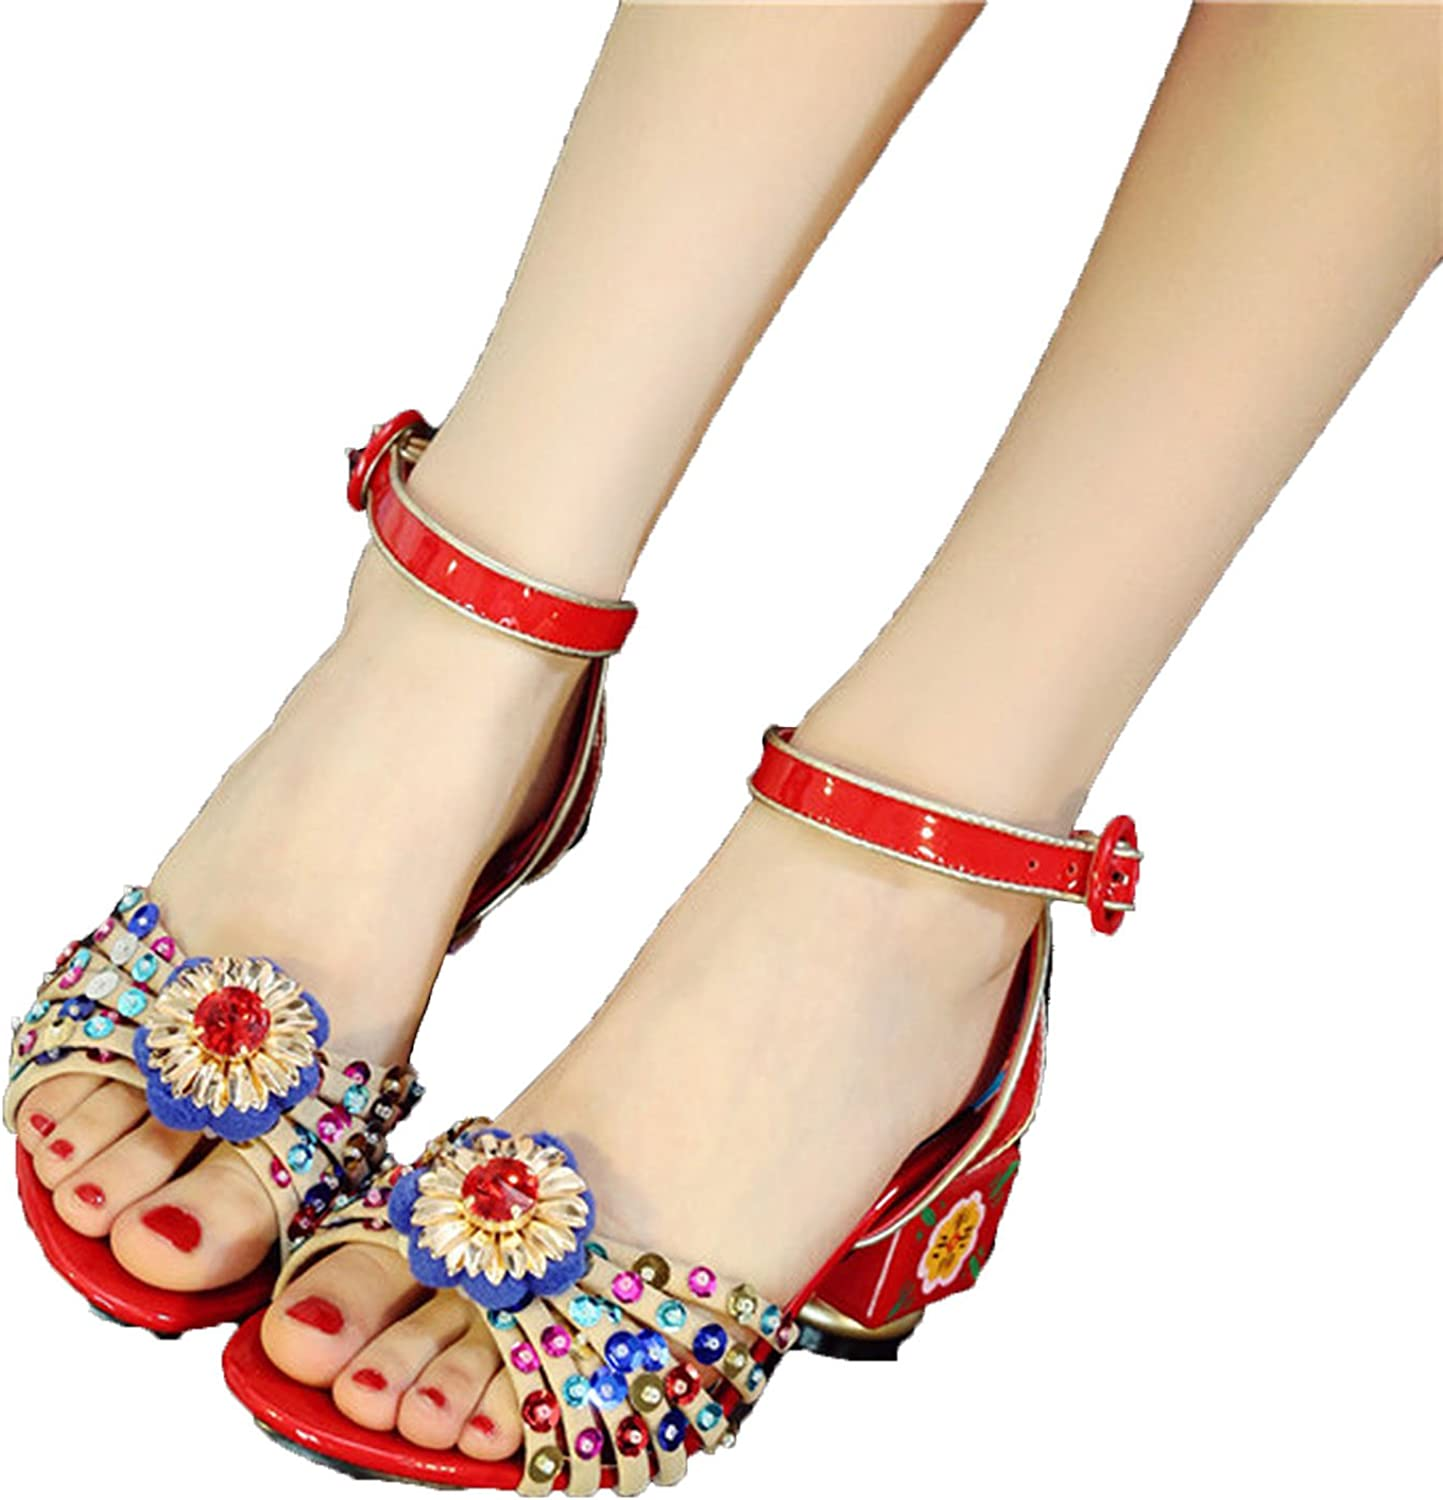 Running-sun Women High-Heel Sandals Painted Flowers Glitter Open-Toed Sandals Plus Size 34-43